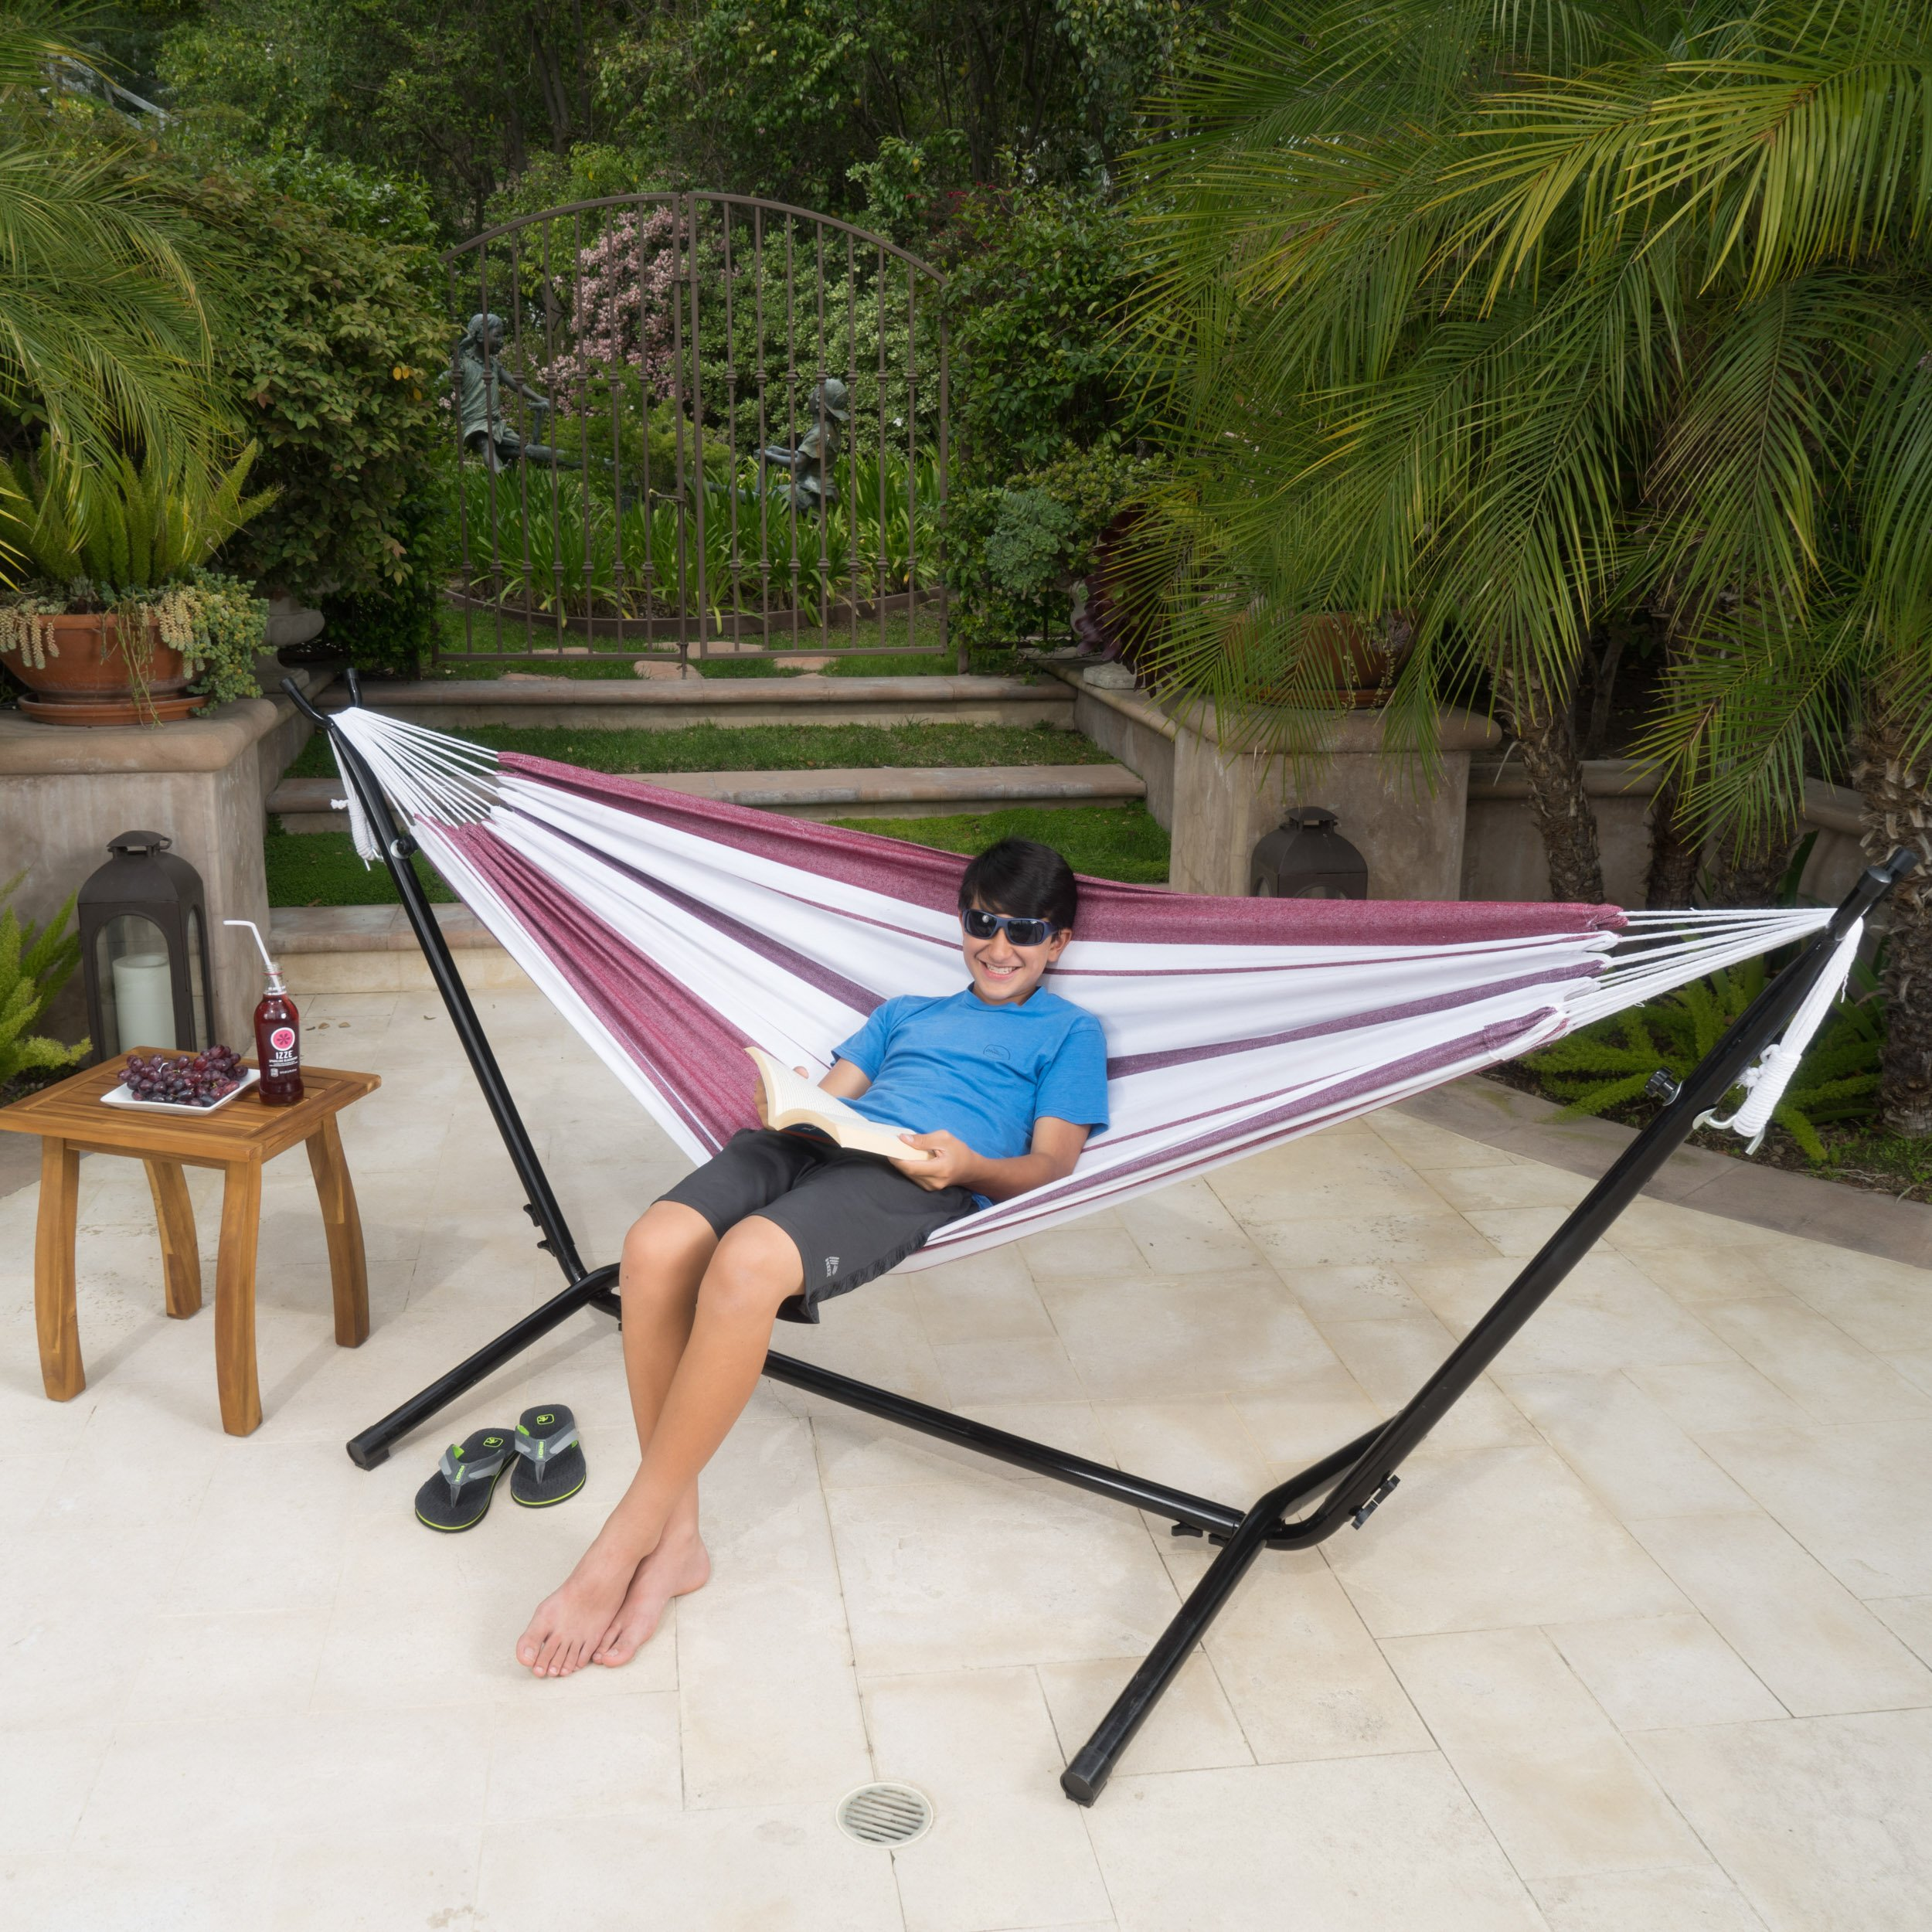 lasiesta siesta habana la organic hammock swings hammocks lounger nougat n colombian products chair